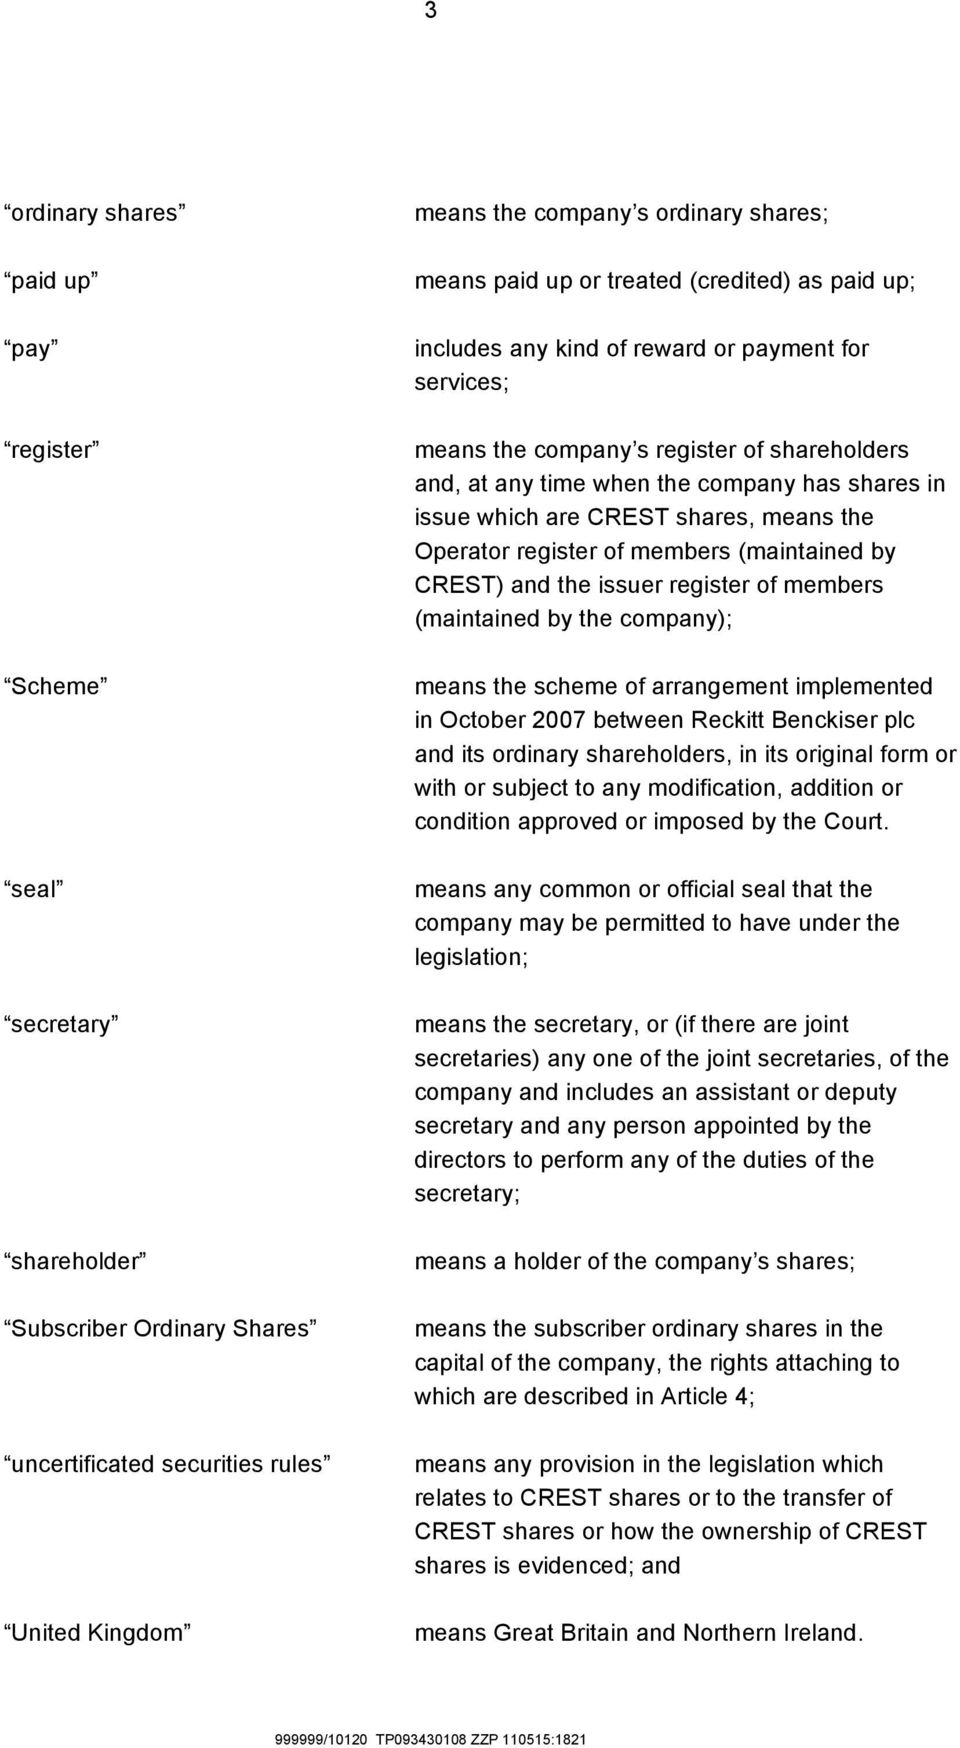 CREST shares, means the Operator register of members (maintained by CREST) and the issuer register of members (maintained by the company); means the scheme of arrangement implemented in October 2007